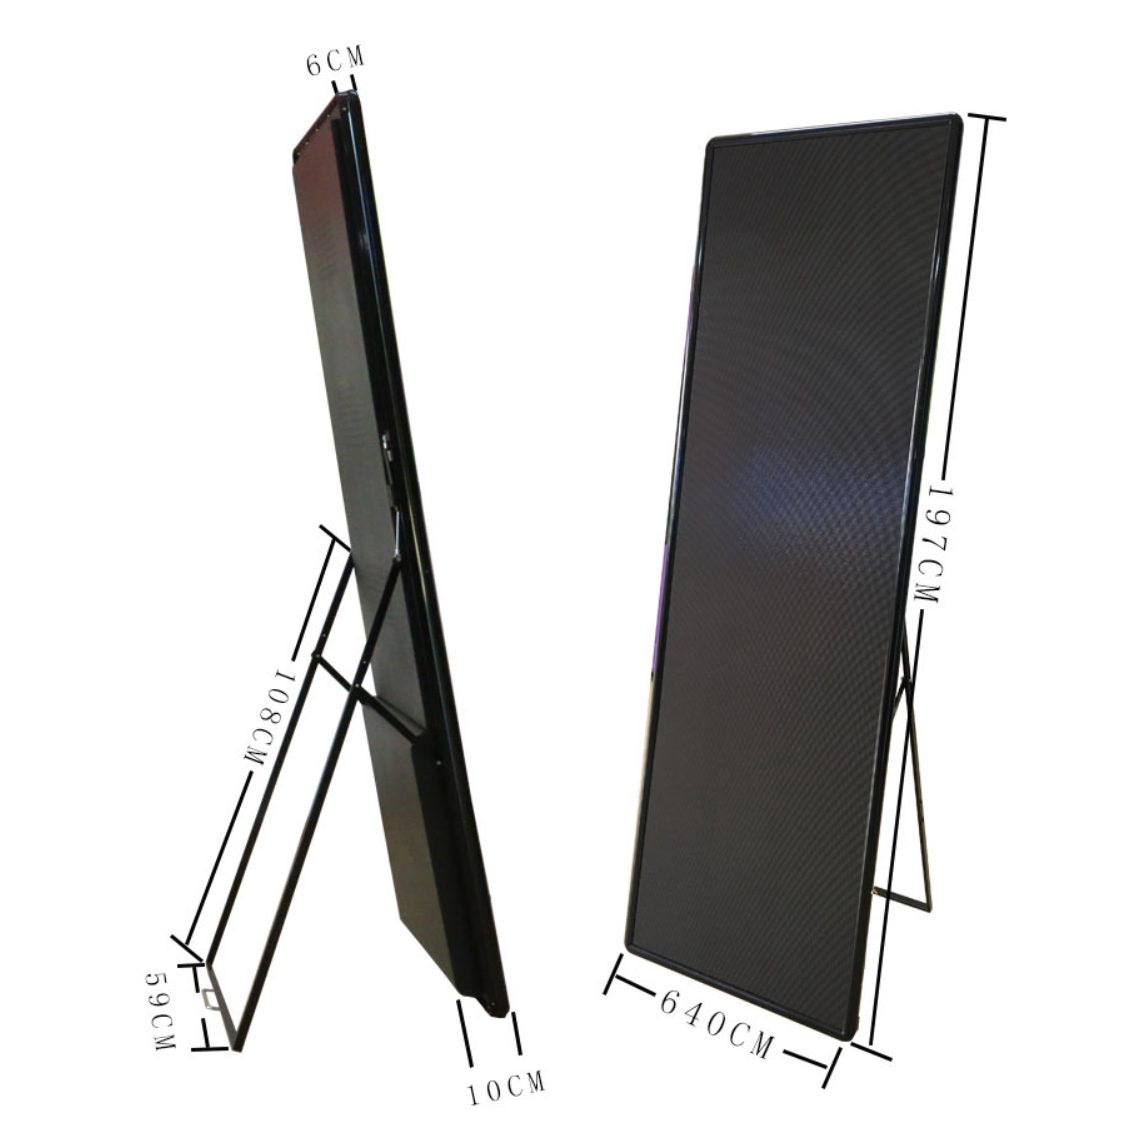 Mirror led display light and thin